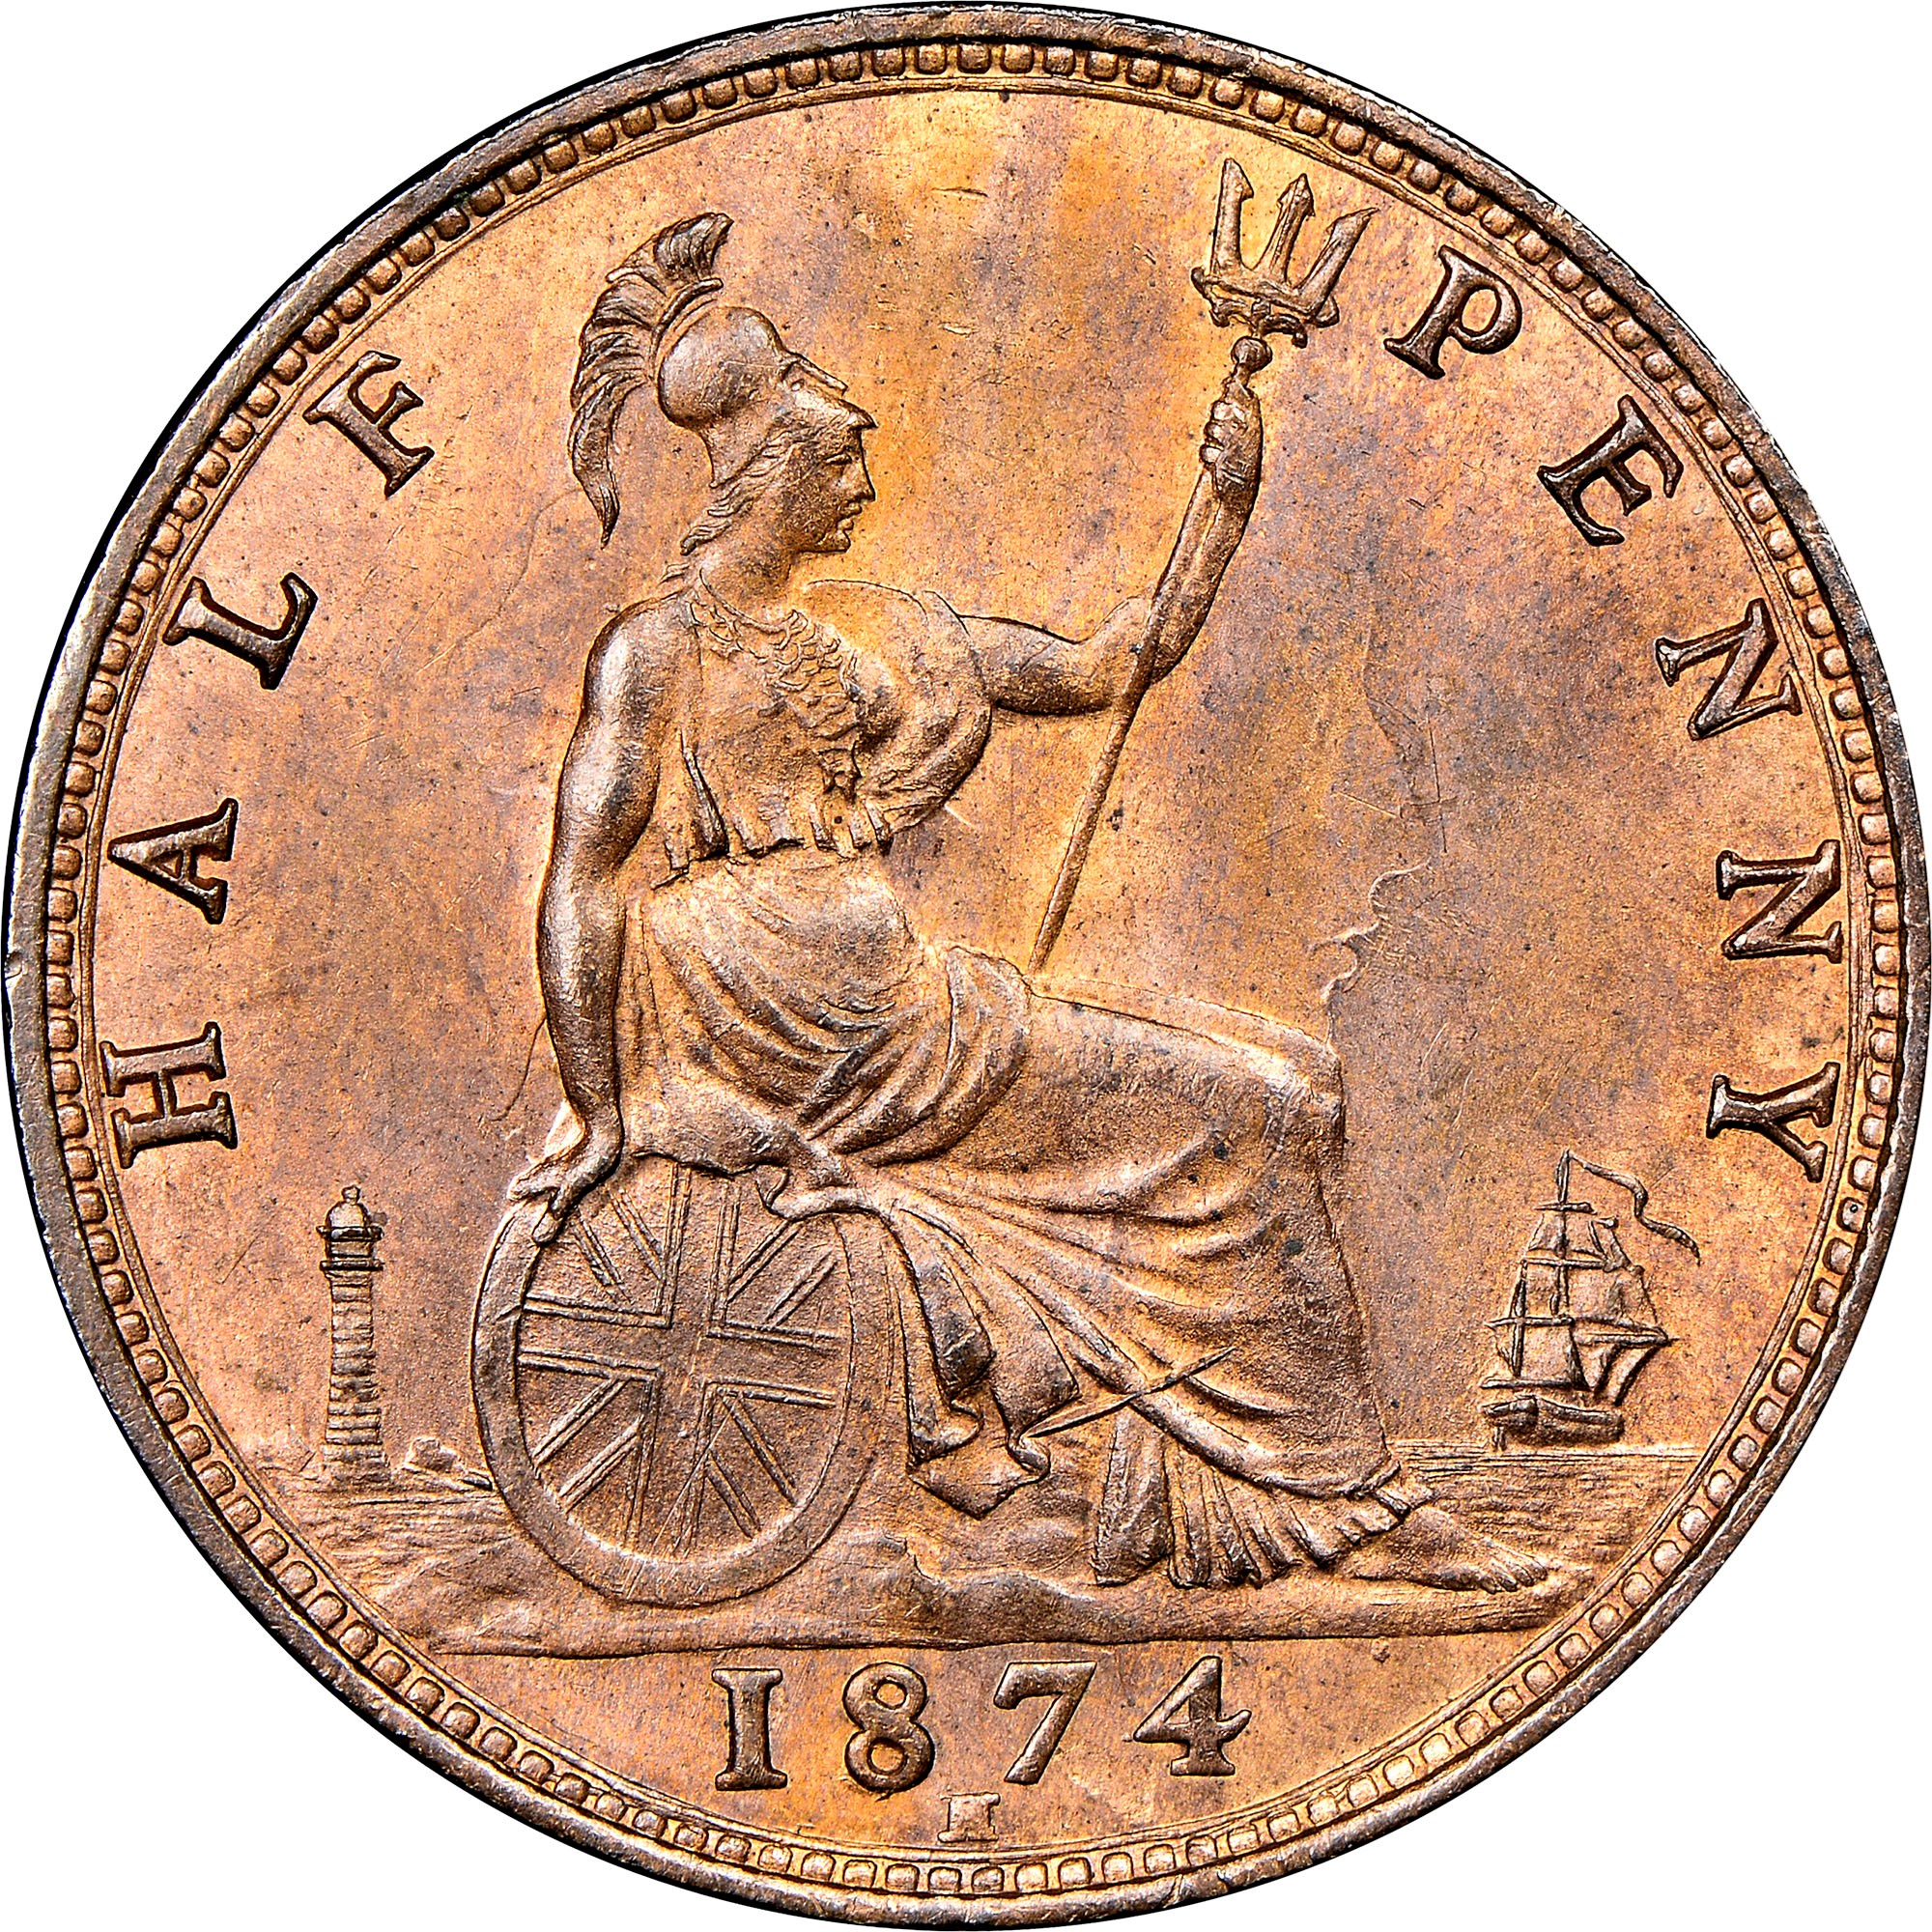 Great Britain 1/2 Penny reverse